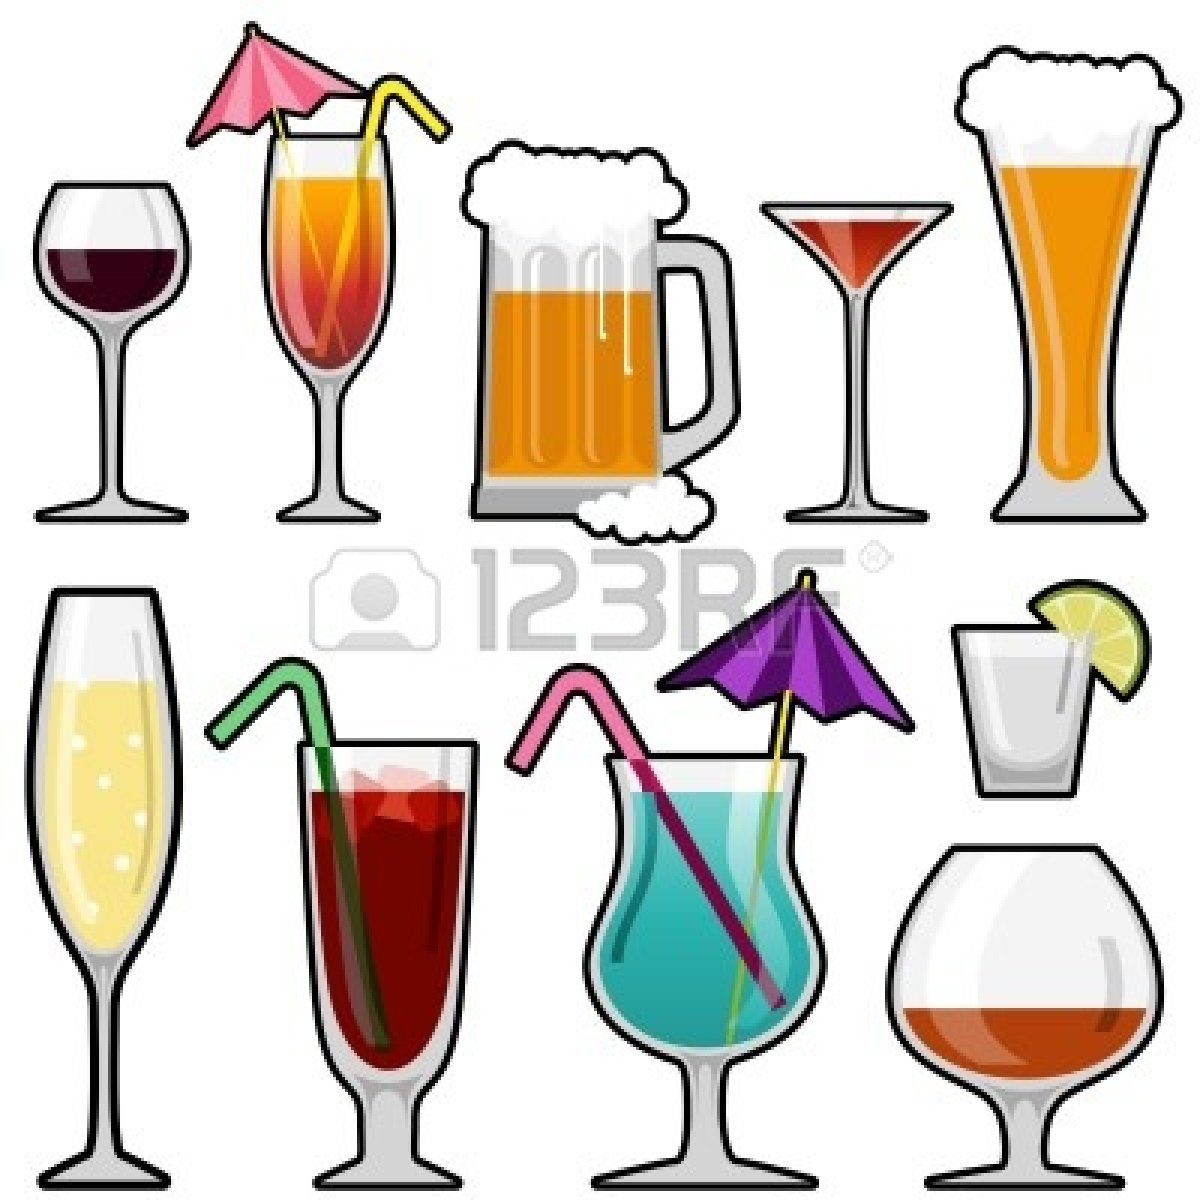 Alcoholic beverages clipart.